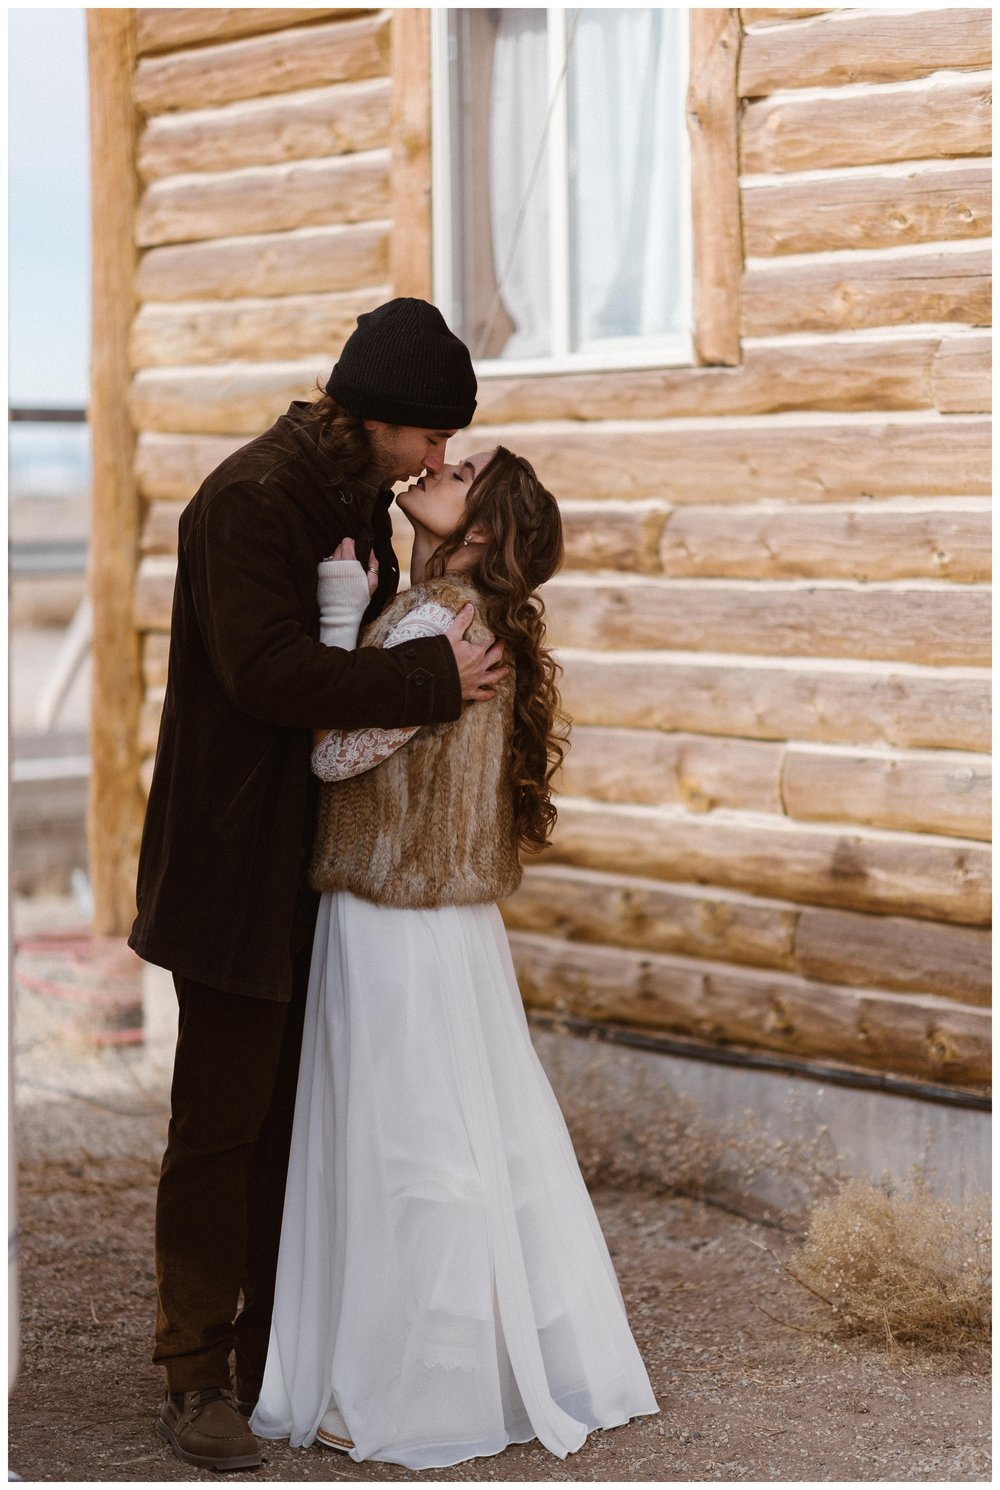 Olivia and Justin outside their cabin near Great Sand Dunes National Park before their winter adventure elopement. Photo by Maddie Mae Photo, Adventures Instead.